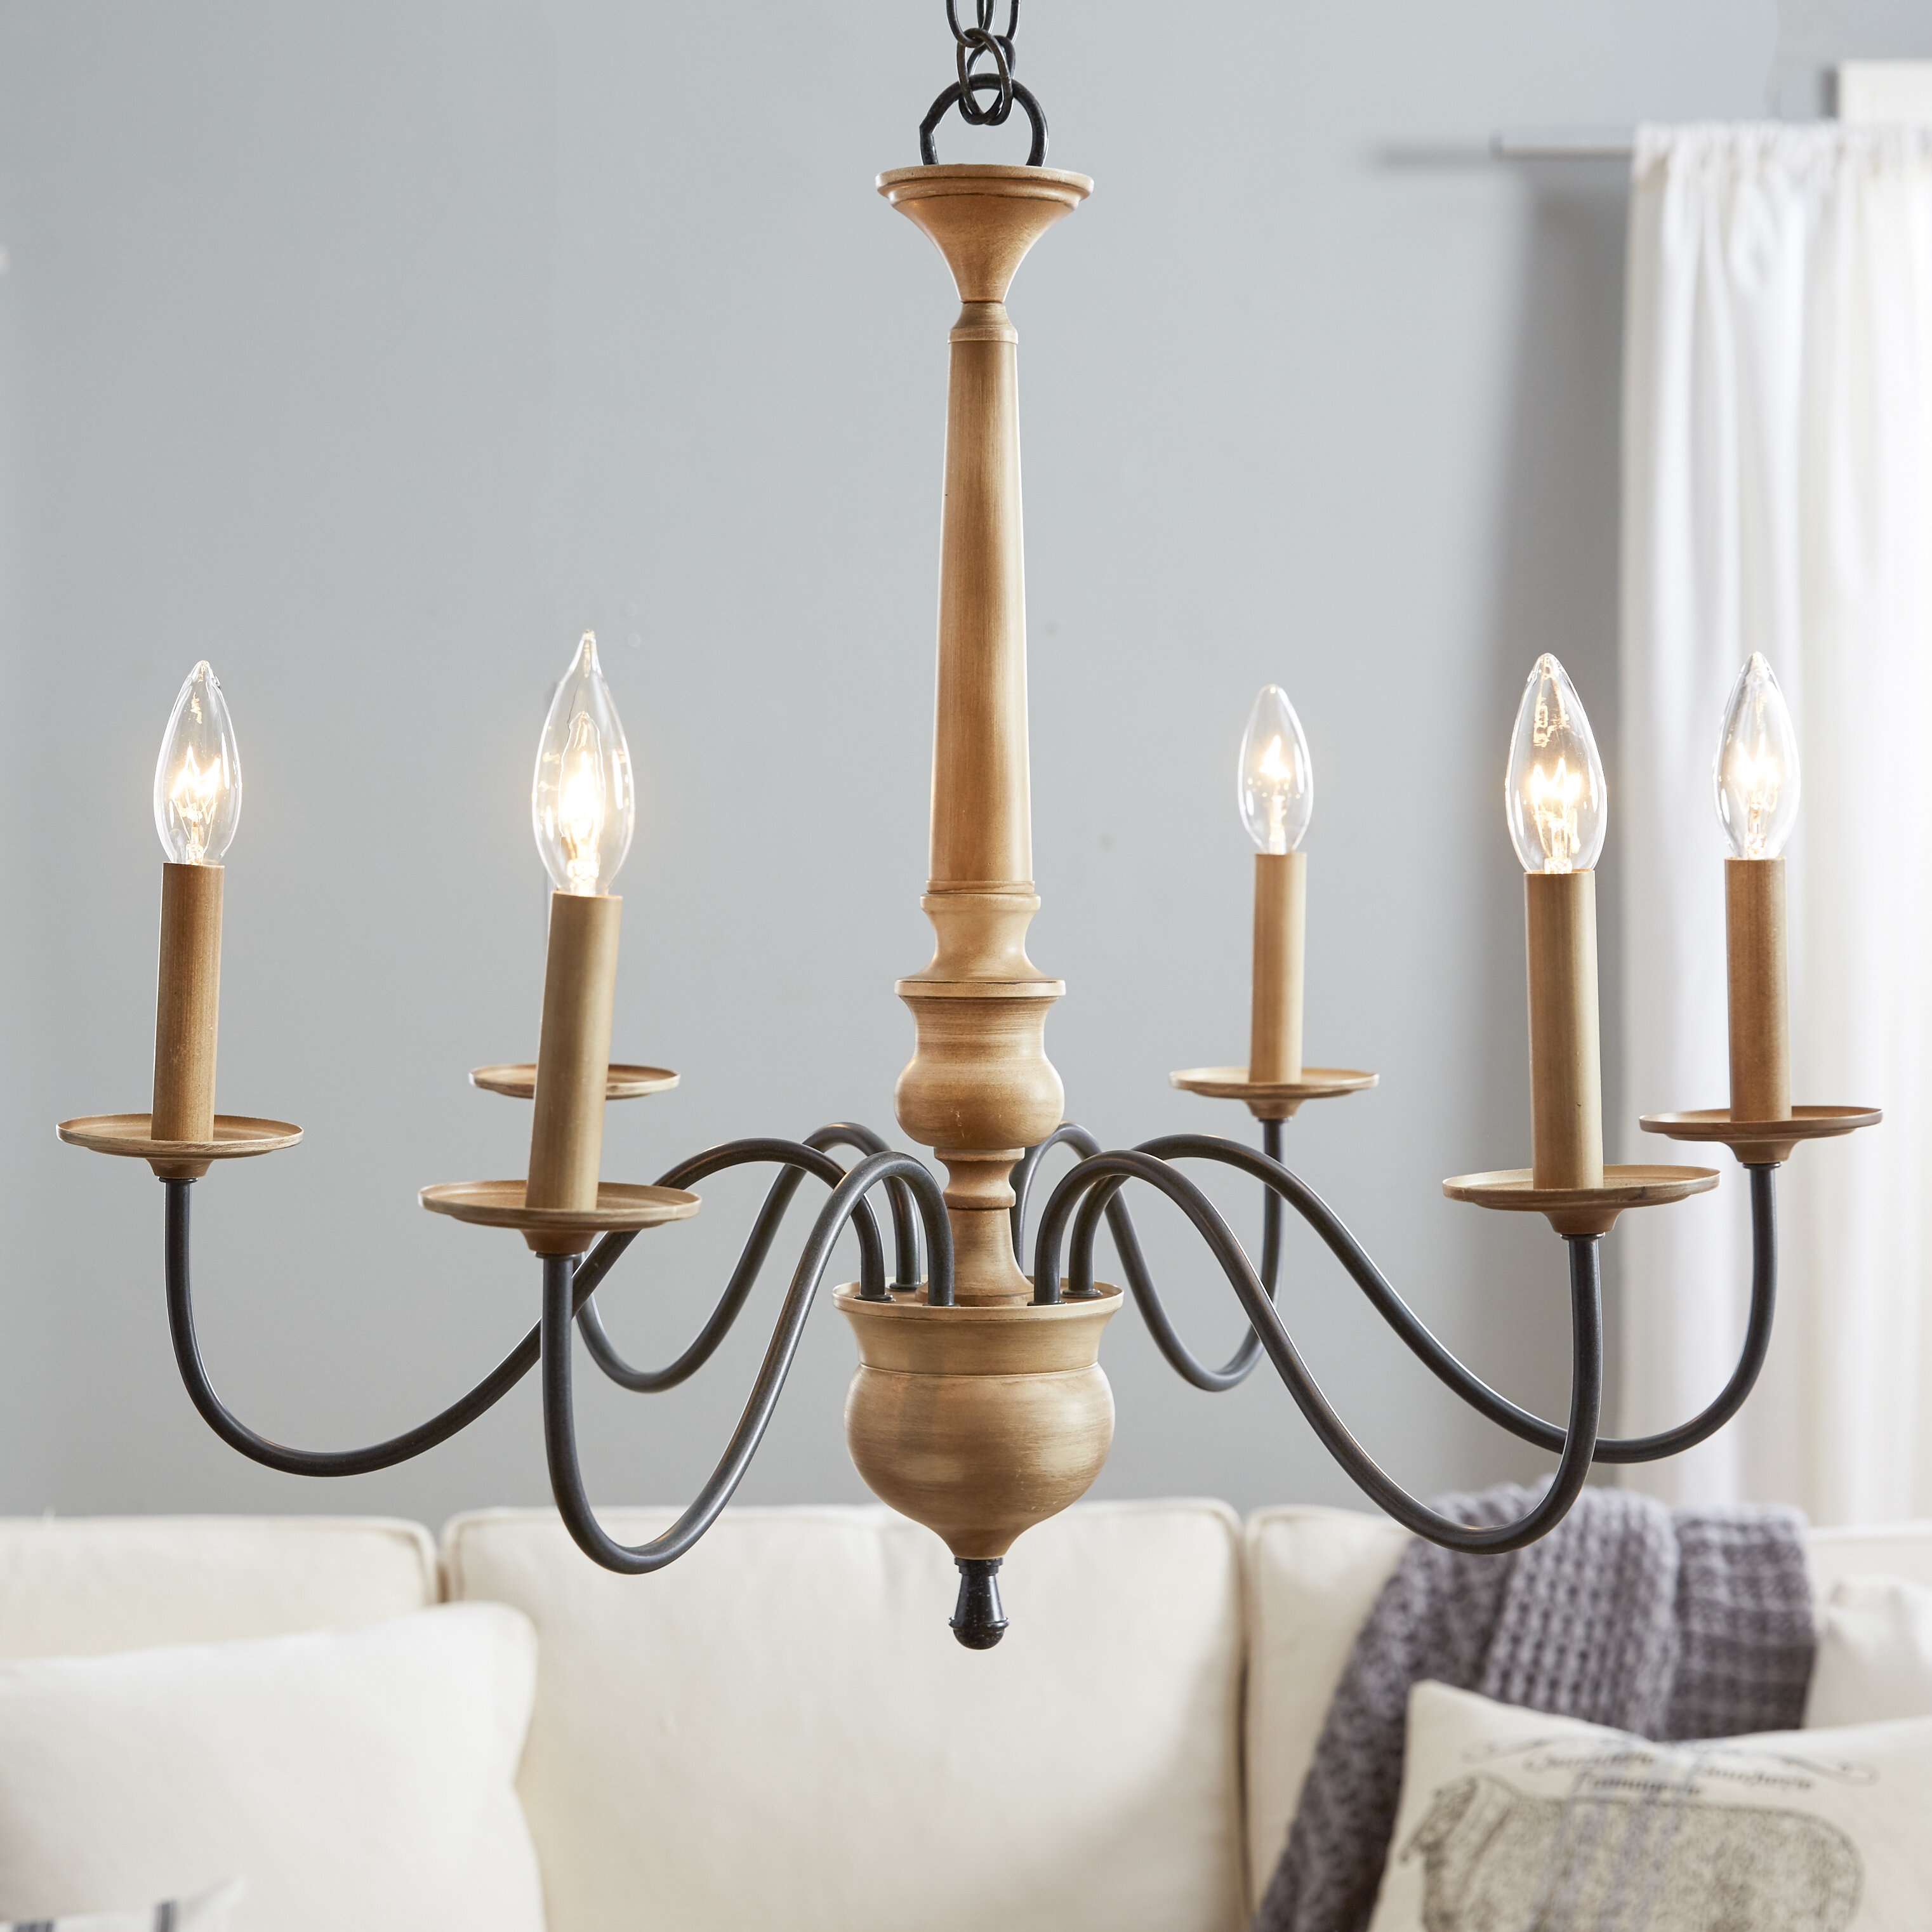 Edson 6 Light Candle Style Chandelier & Reviews